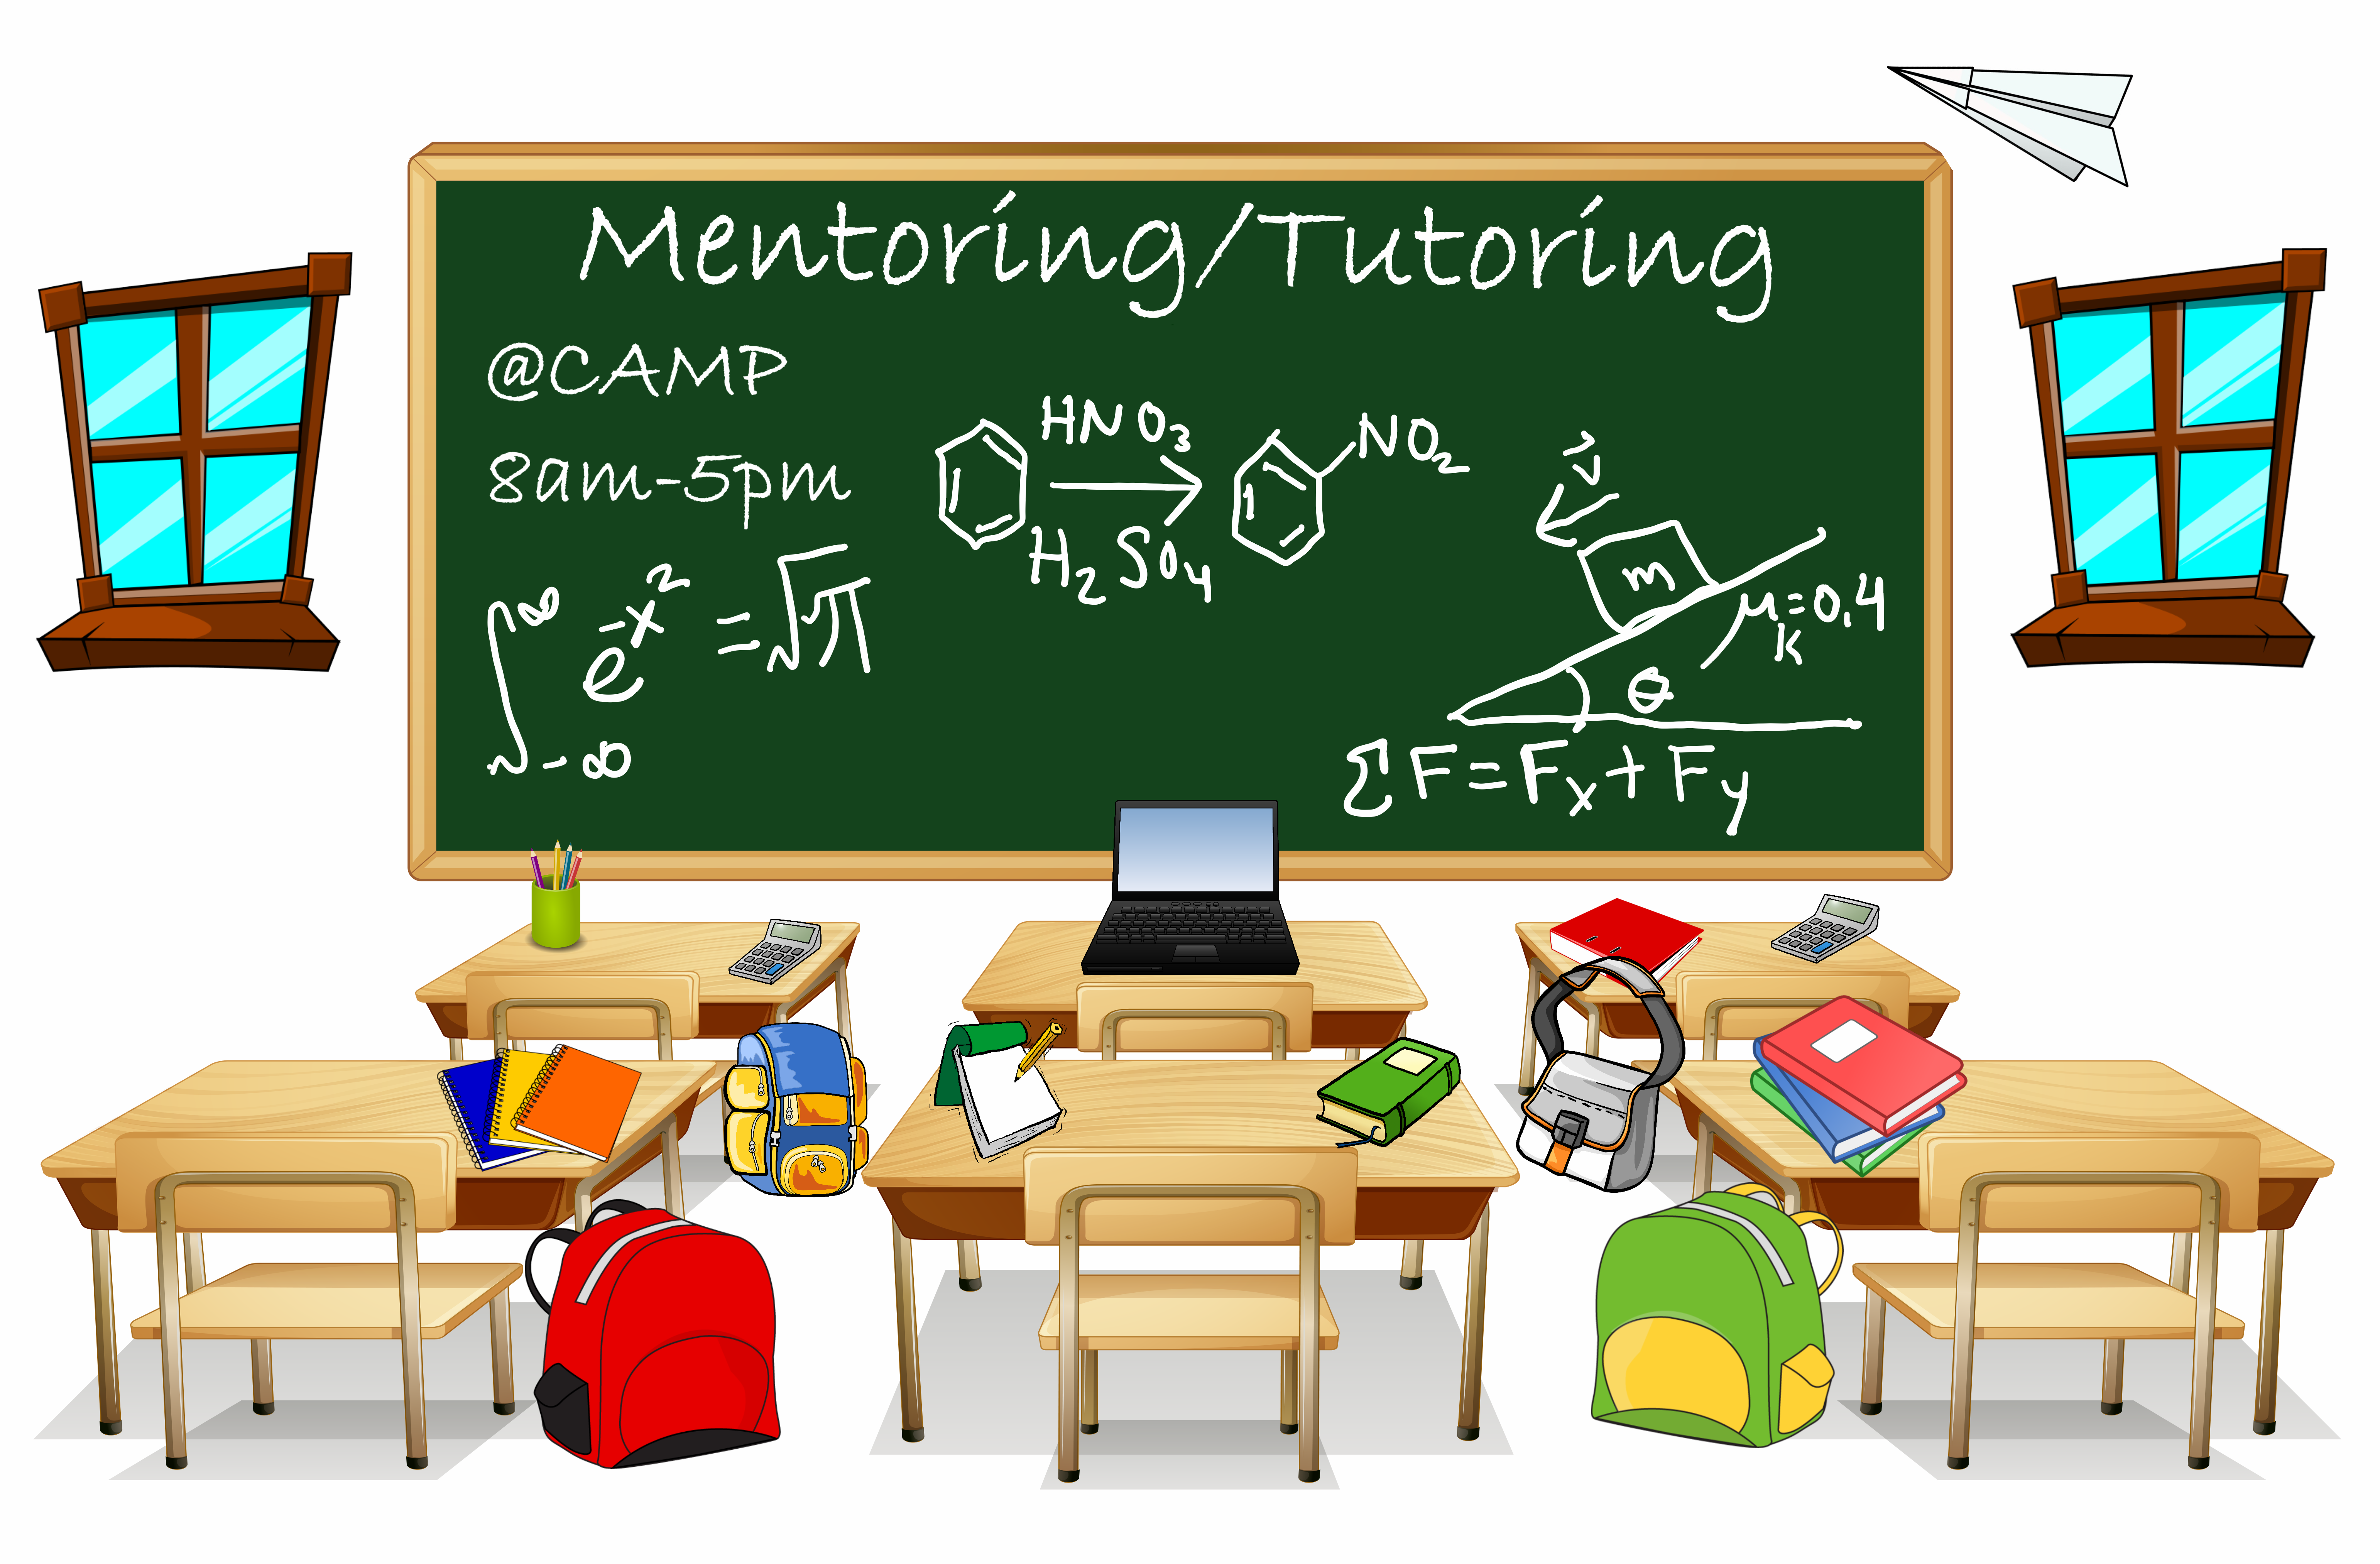 We offer mentoring/tutoring to our CAMP students